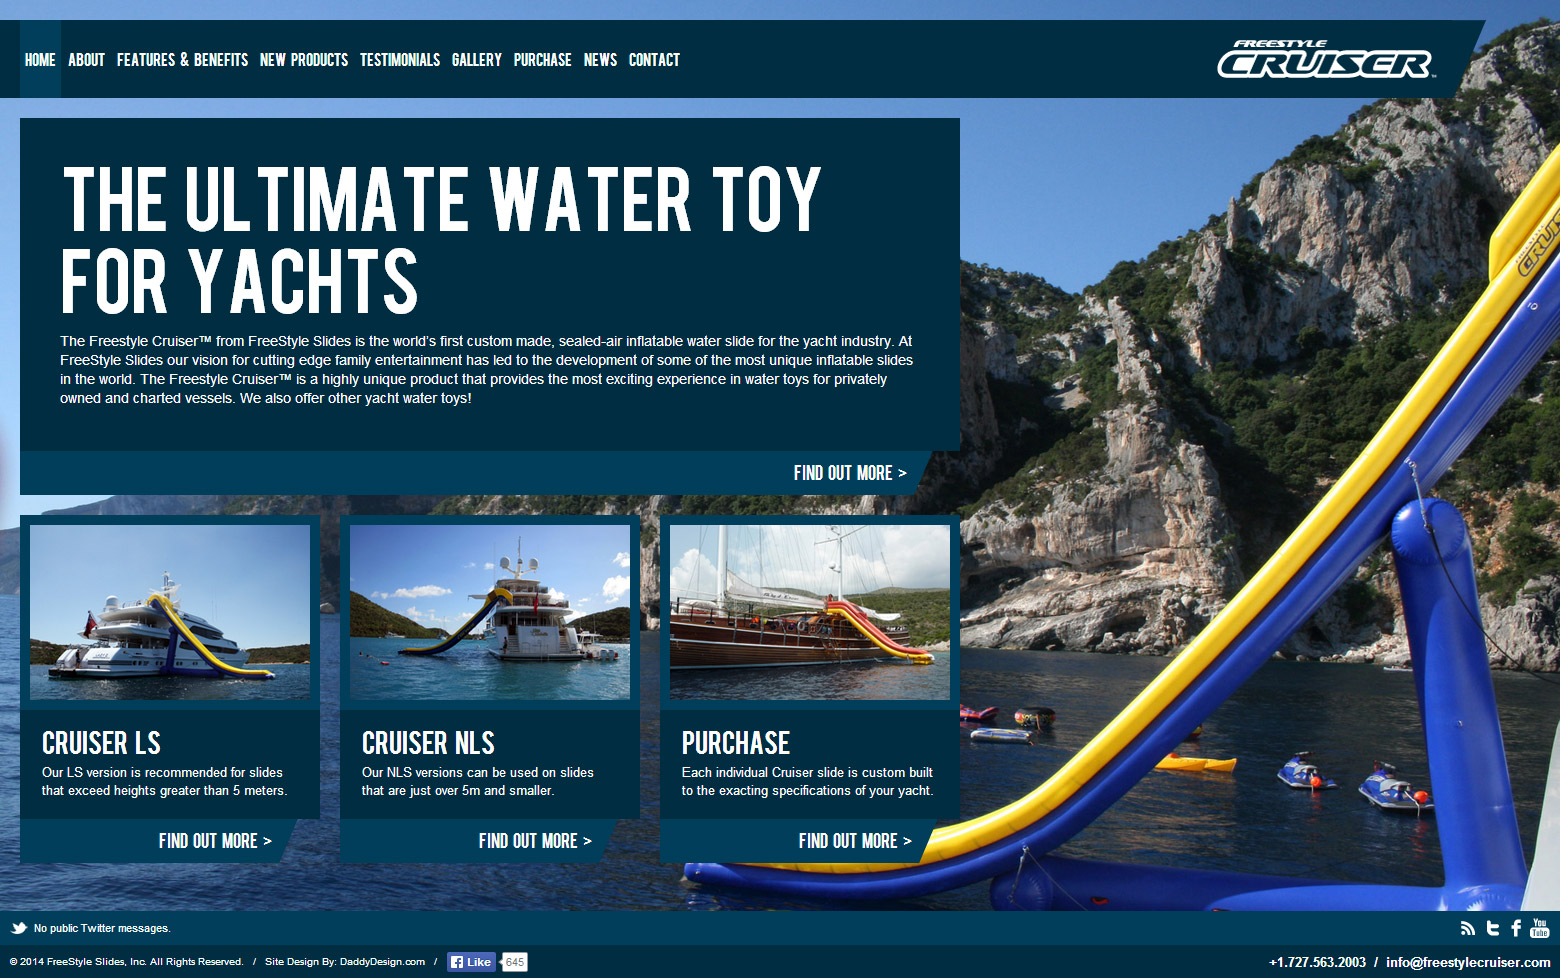 The Ultimate Water Toy for Yachts